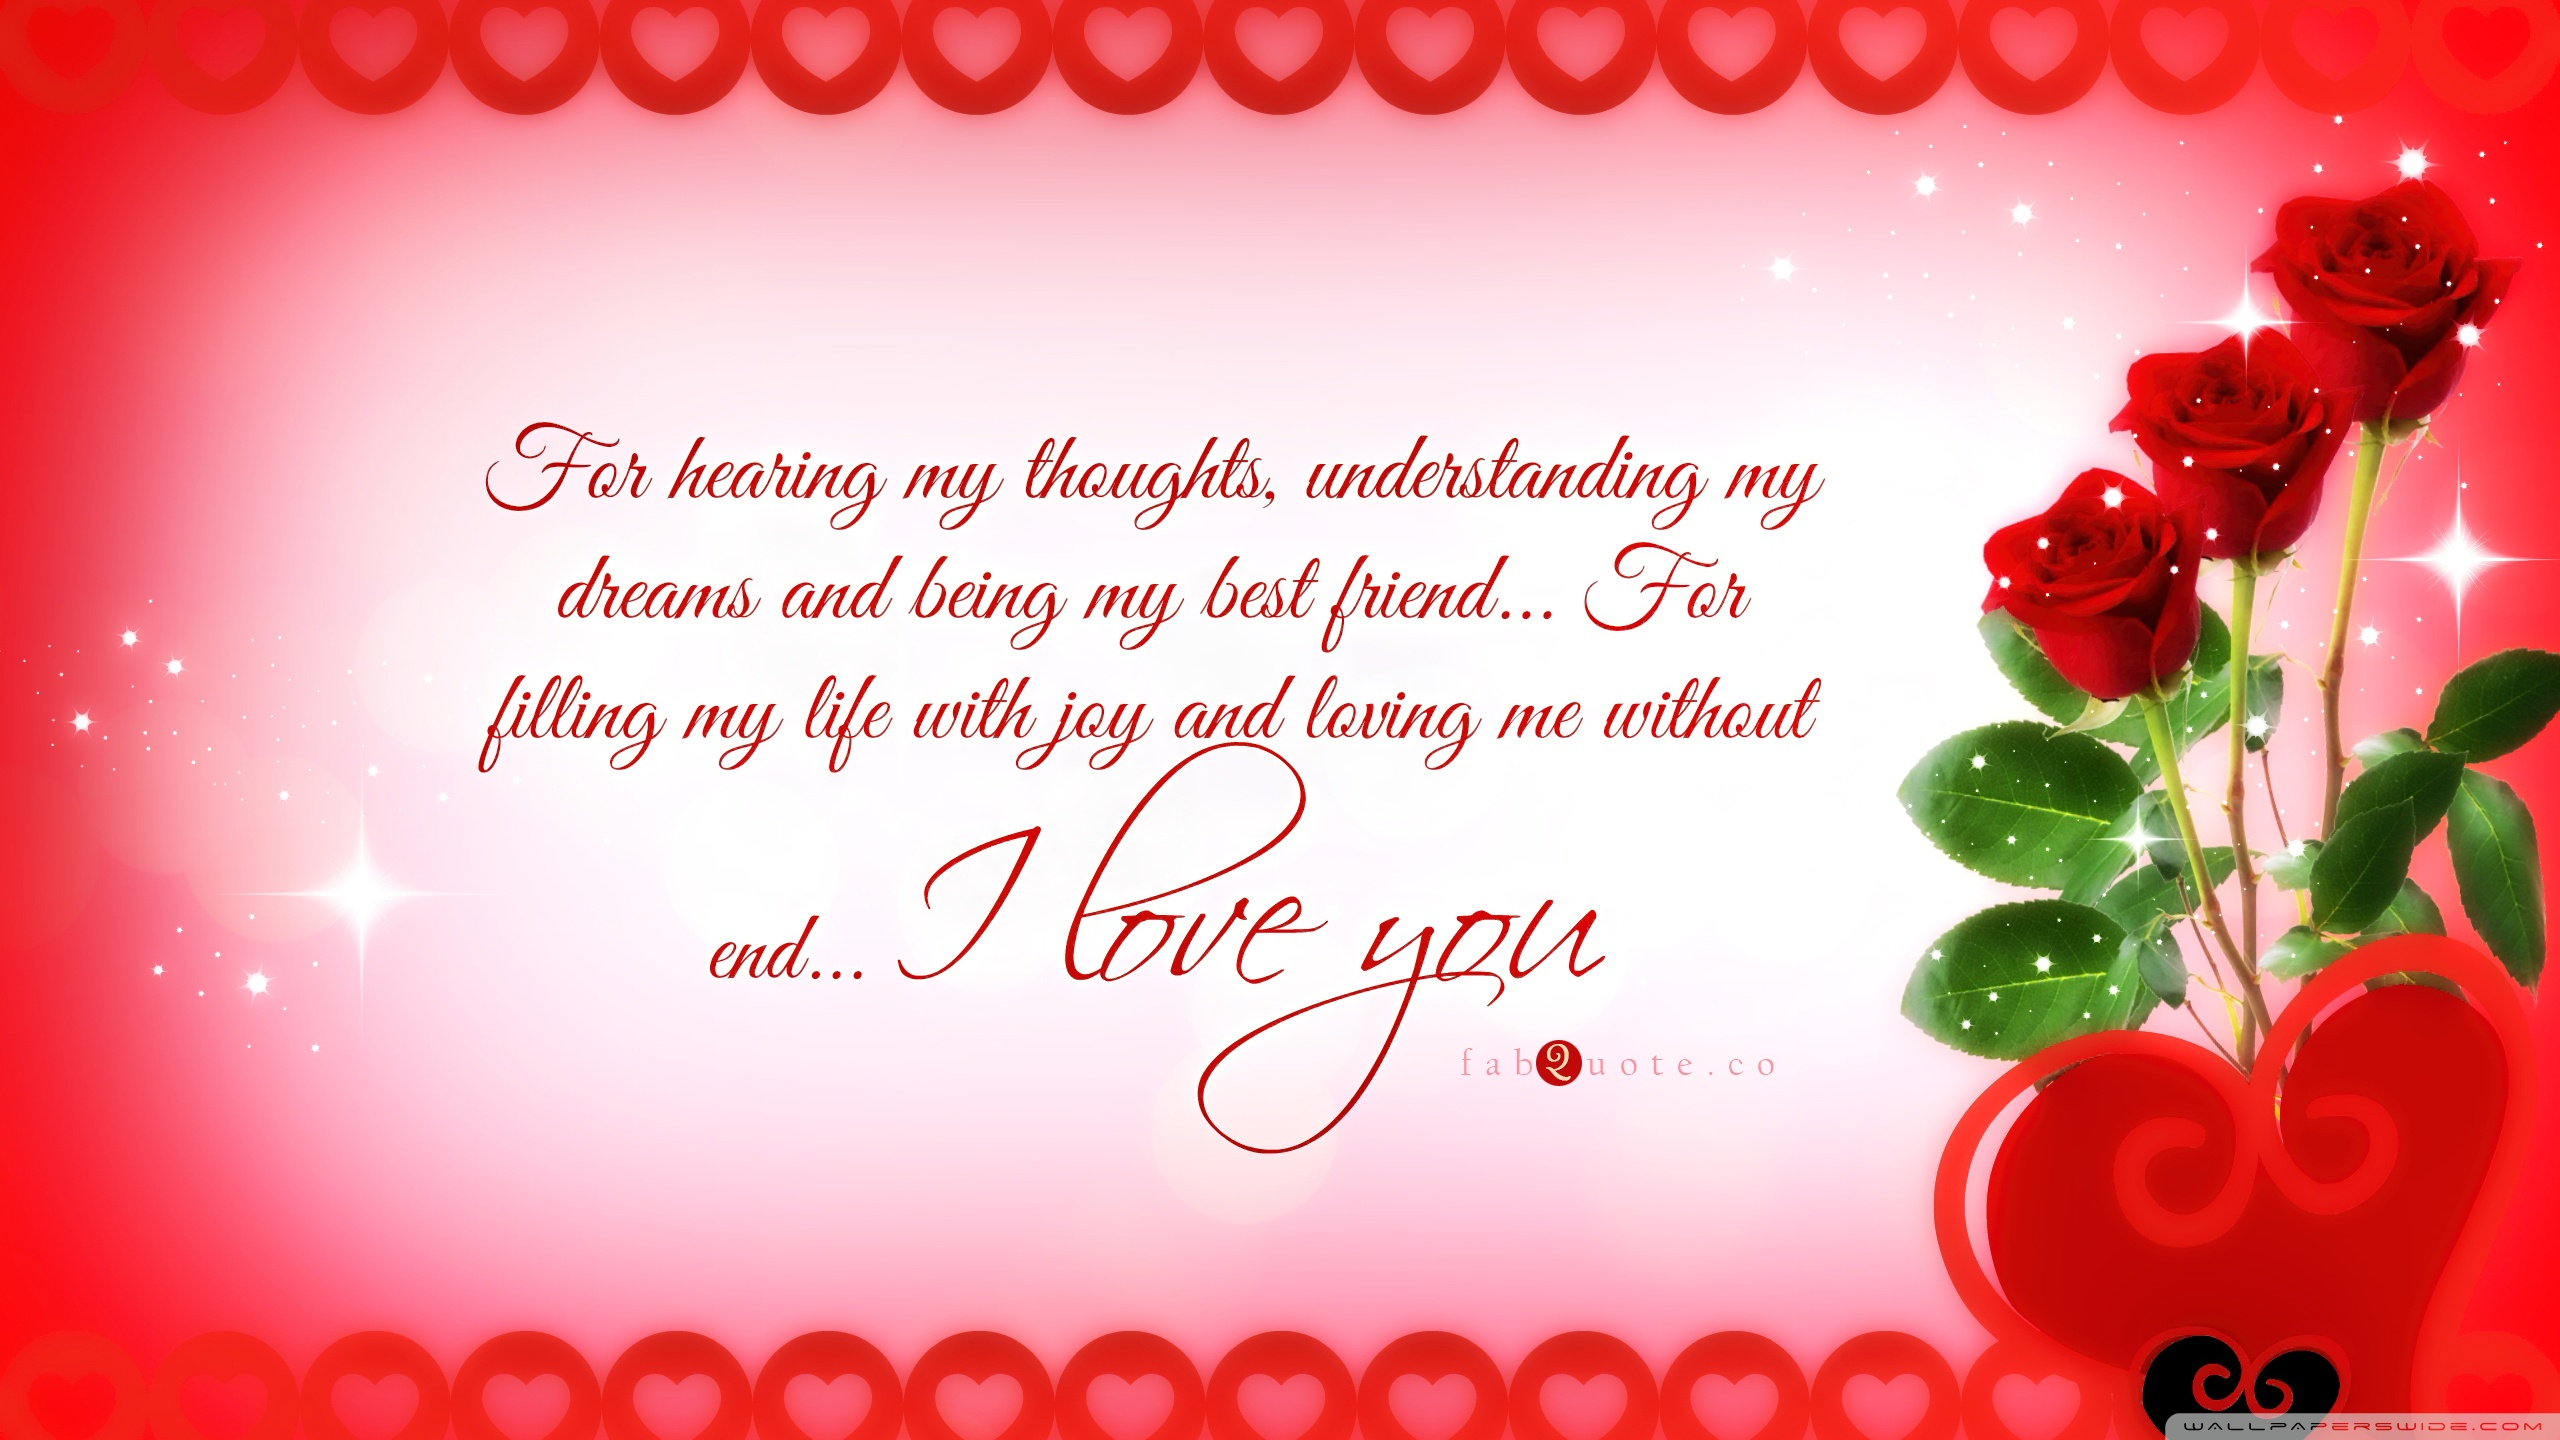 I Love You Hd Wallpaper On Valentines Day 2560x1440